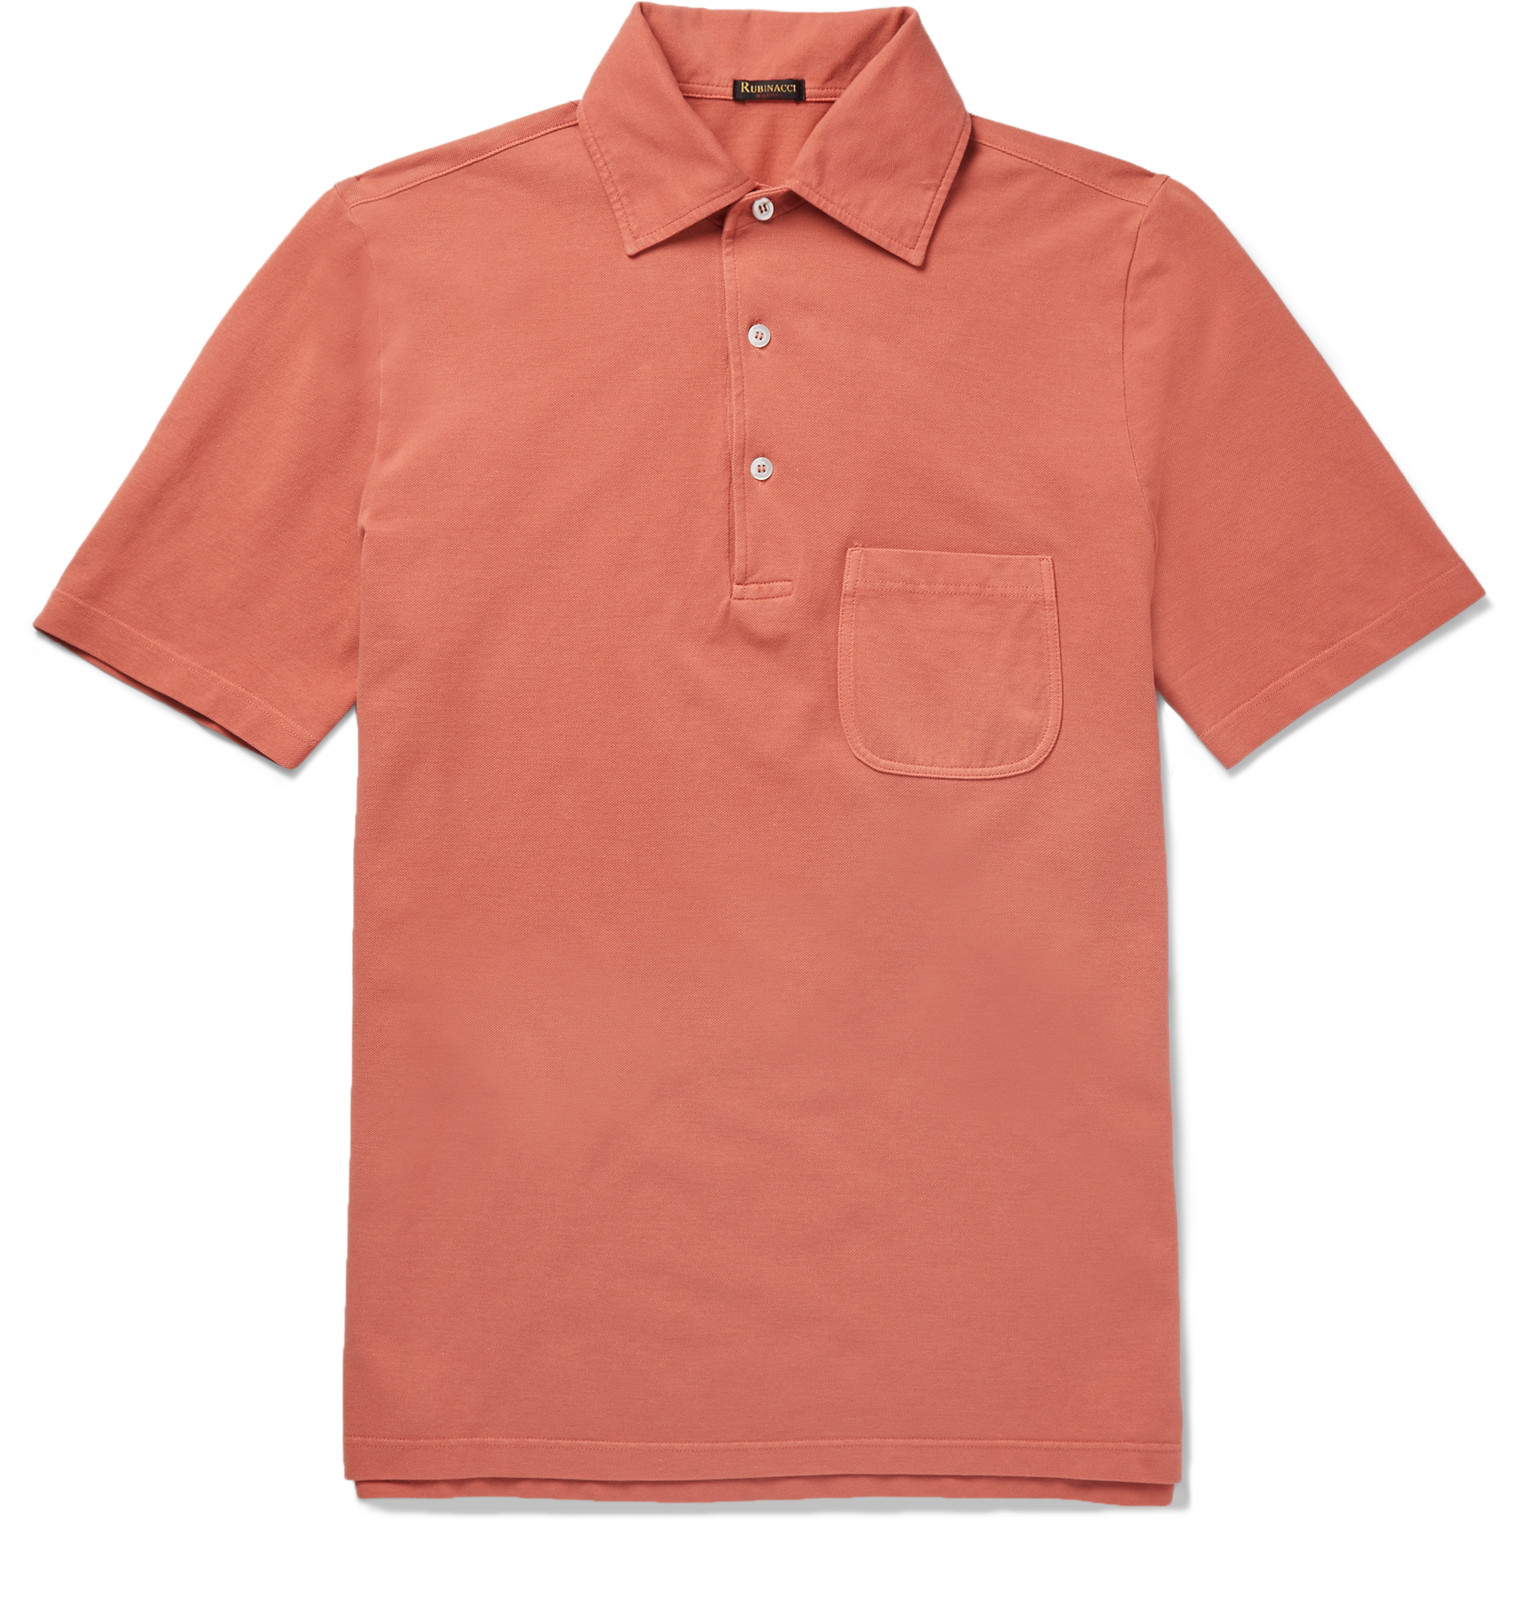 Rubinacci Slim Fit Cotton Piqu Polo Shirt In Orange For